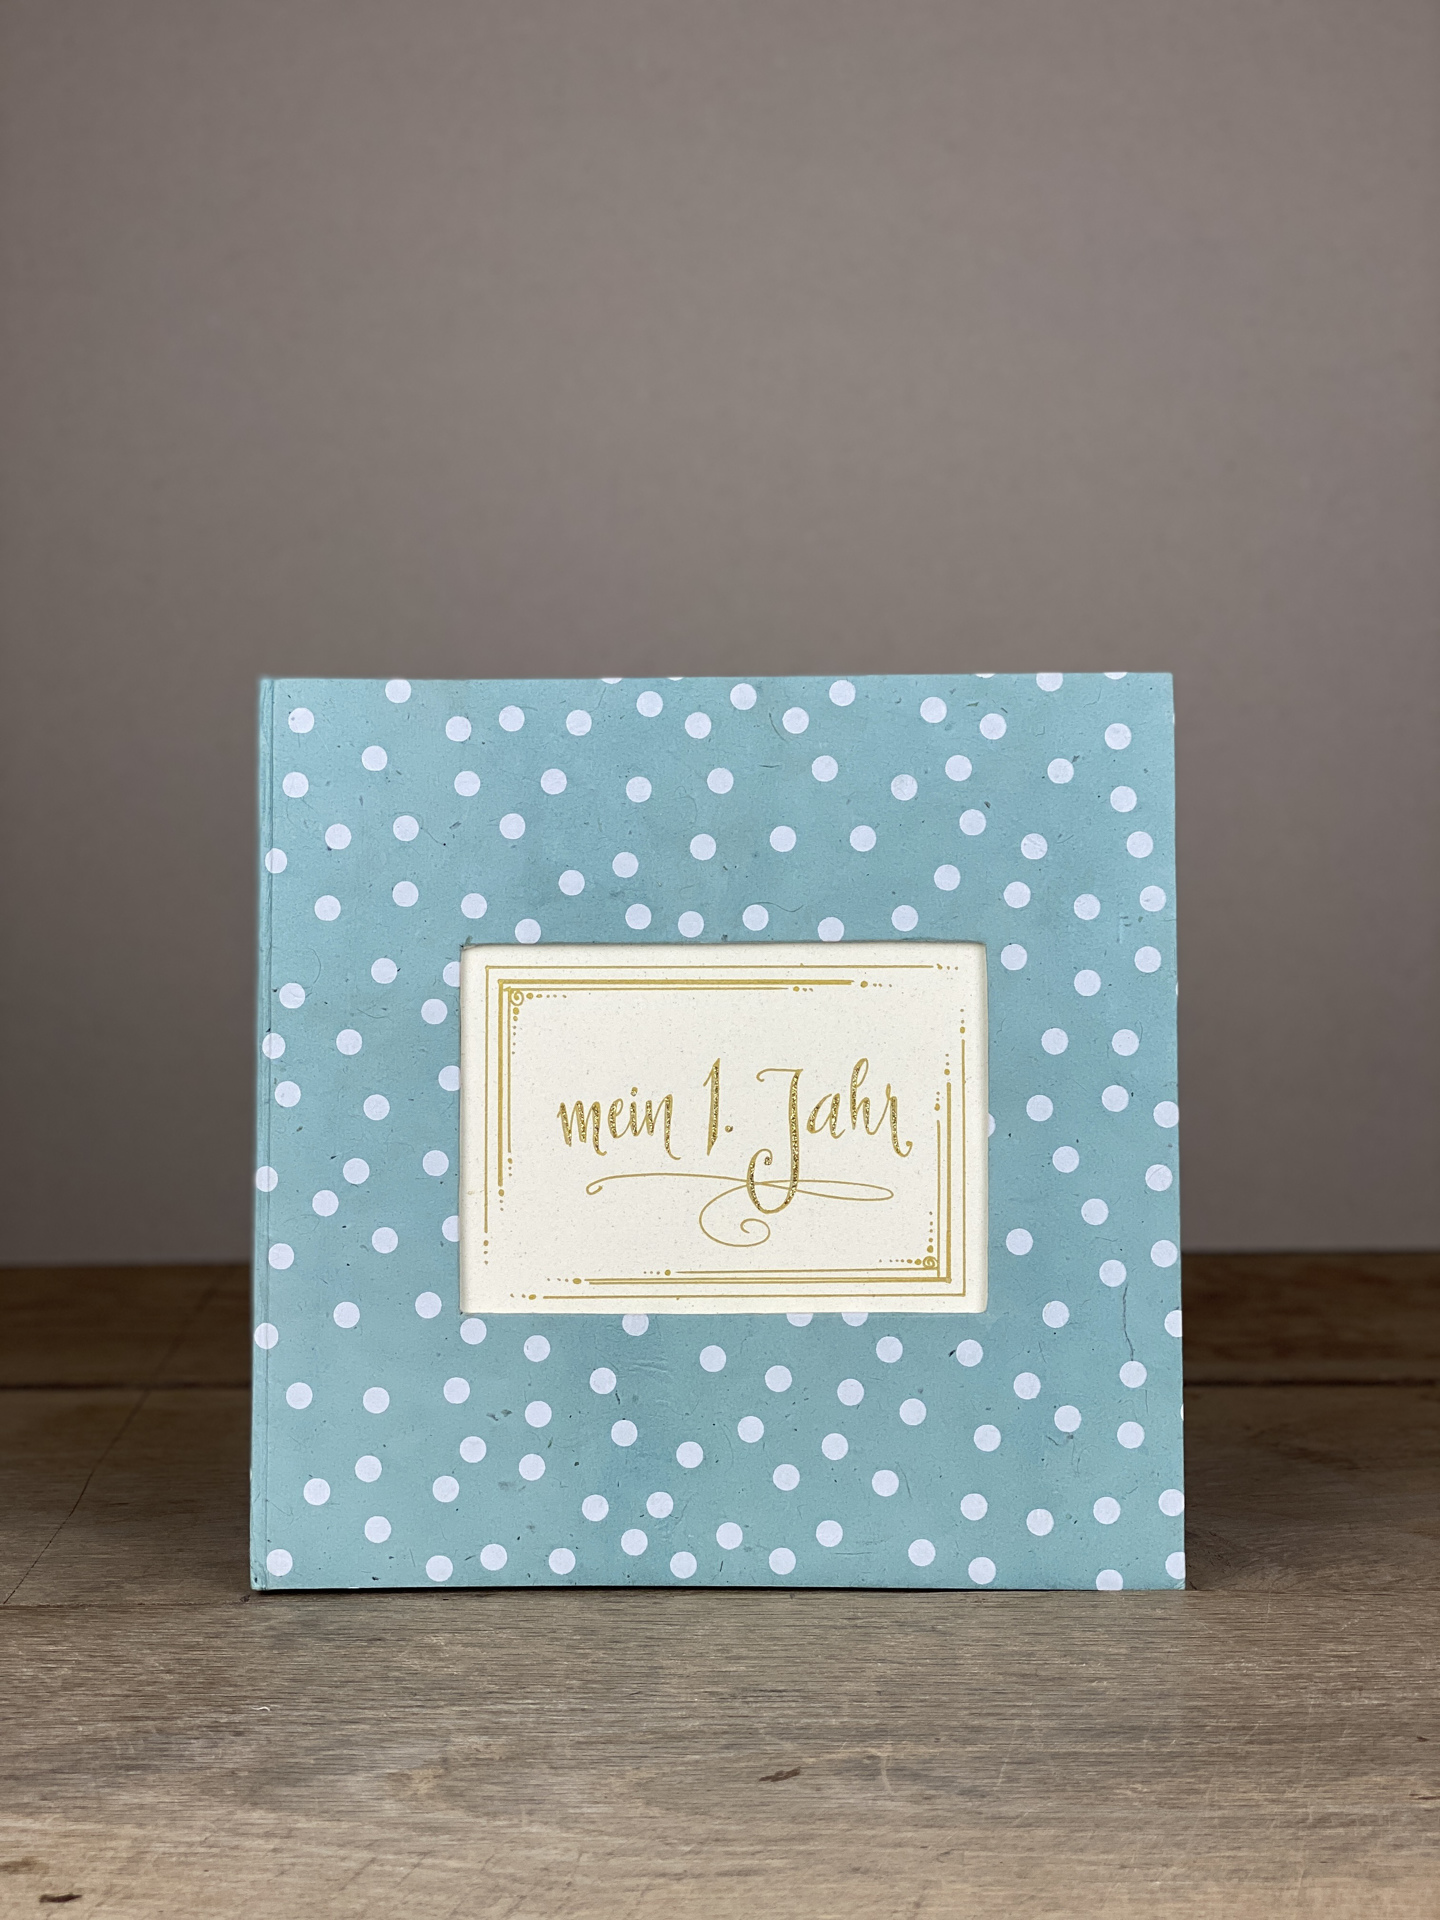 Album Hardcover Quart Dots blau/weiß